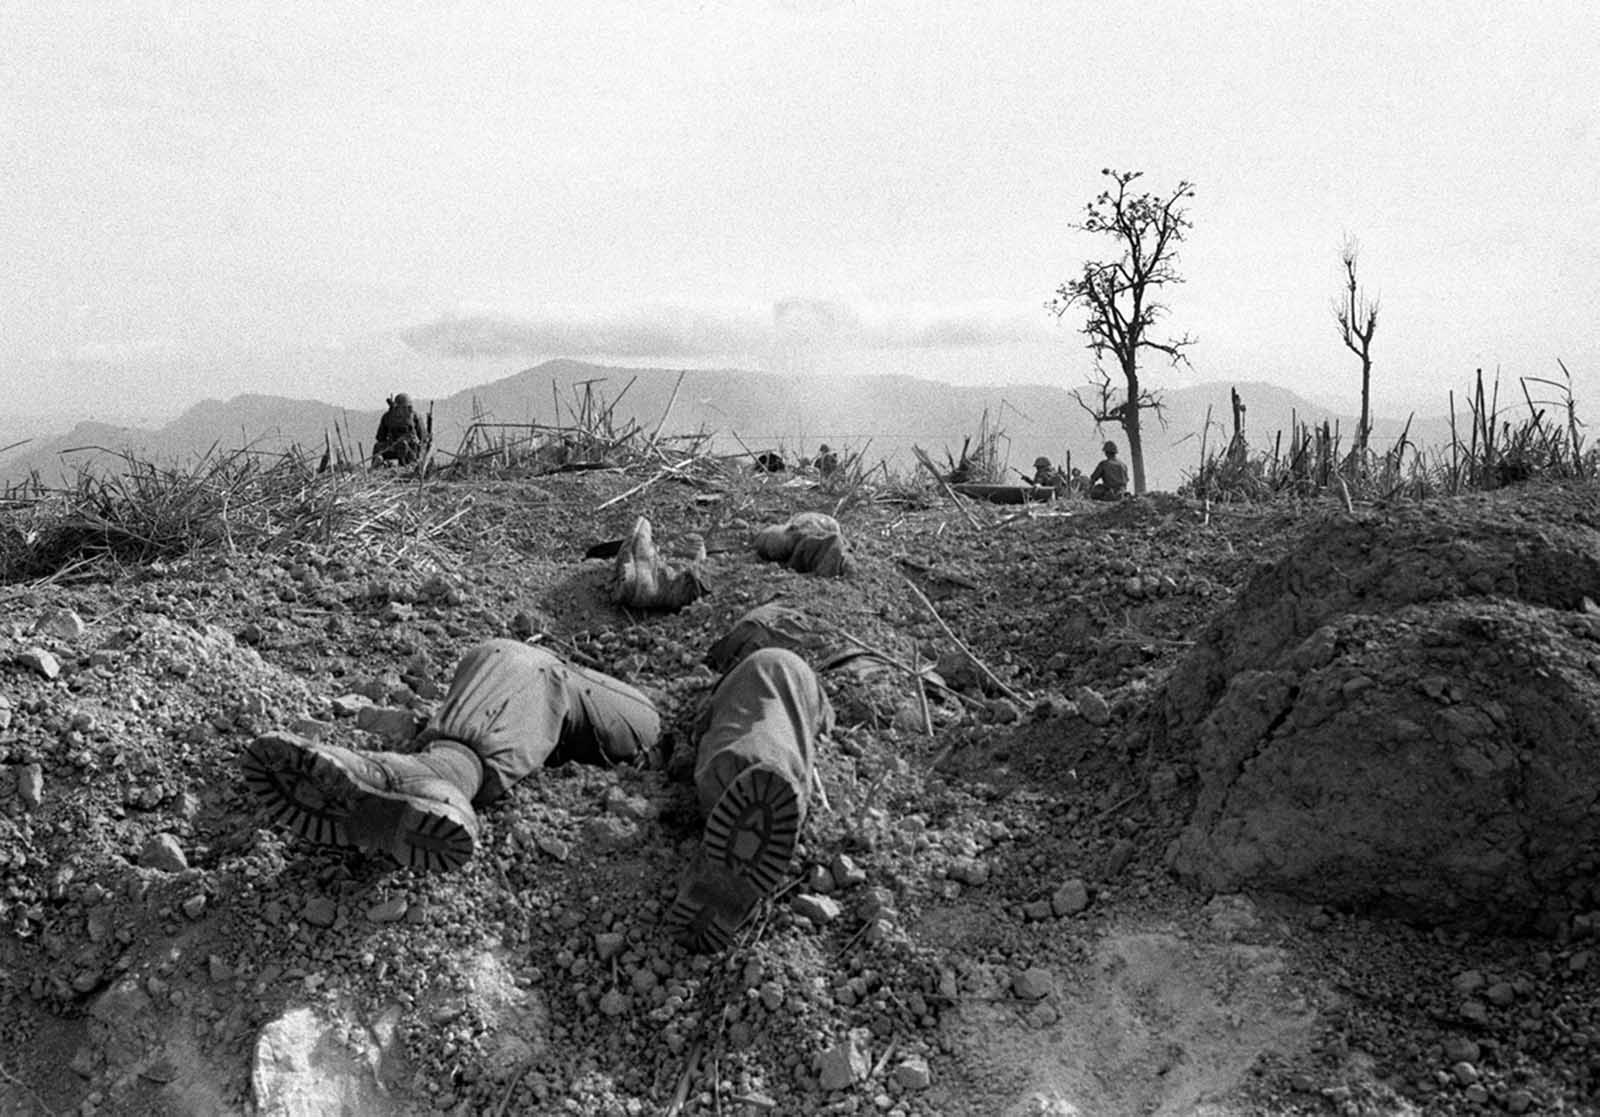 The bodies of U.S. Marines lie half buried on Hill 689, about two-and-a-half miles west of Khe Sanh, in April of 1968. Fellow Marines stand guard in the background after battling entrenched North Vietnamese troops for the hill.